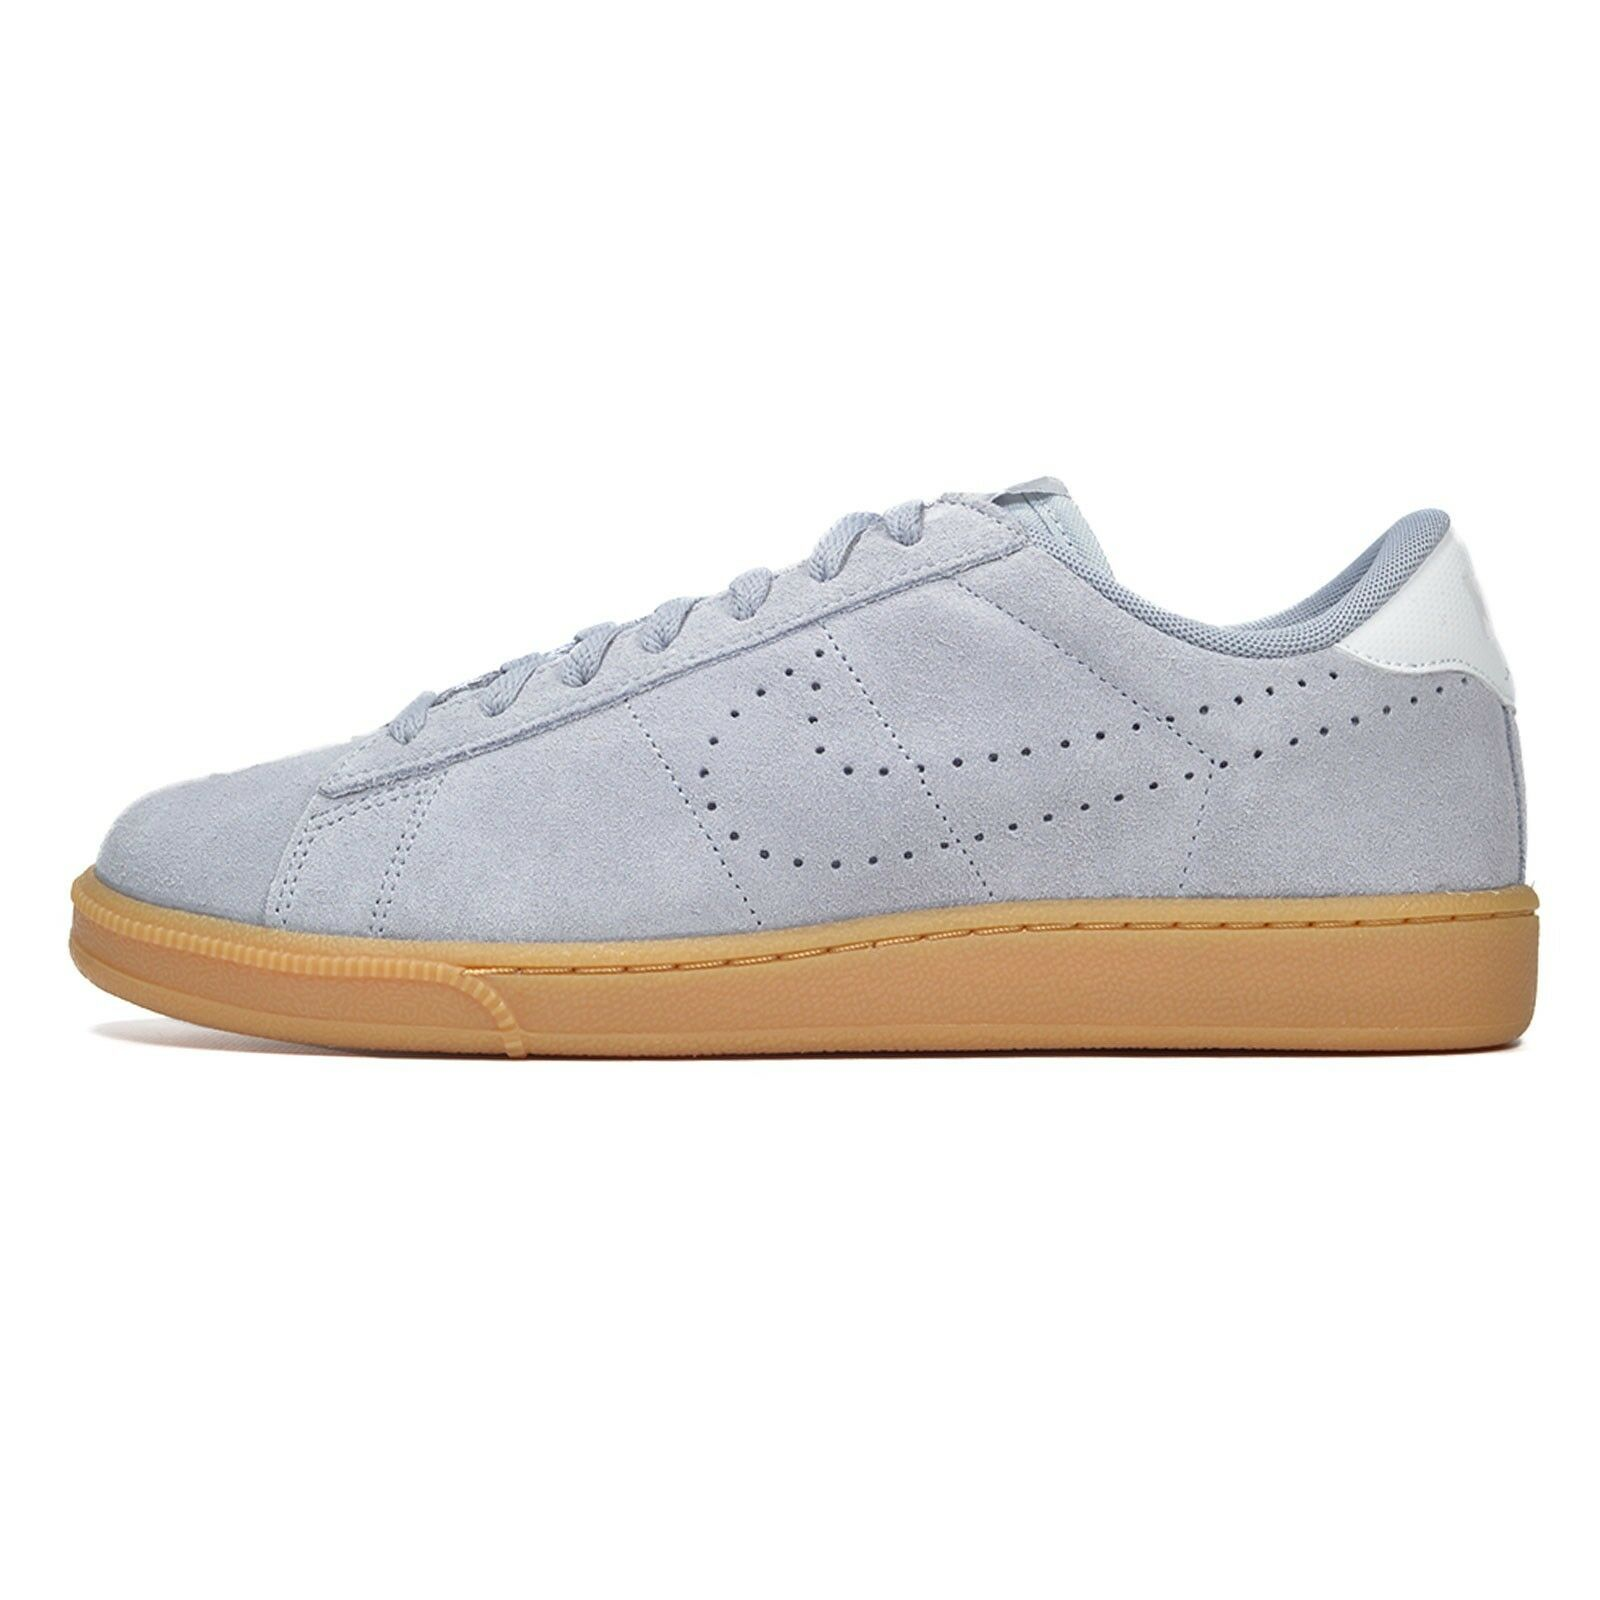 Nike Tennis Classic CS Suede Homme Athletic Sneakers 829351 003  Gris  New